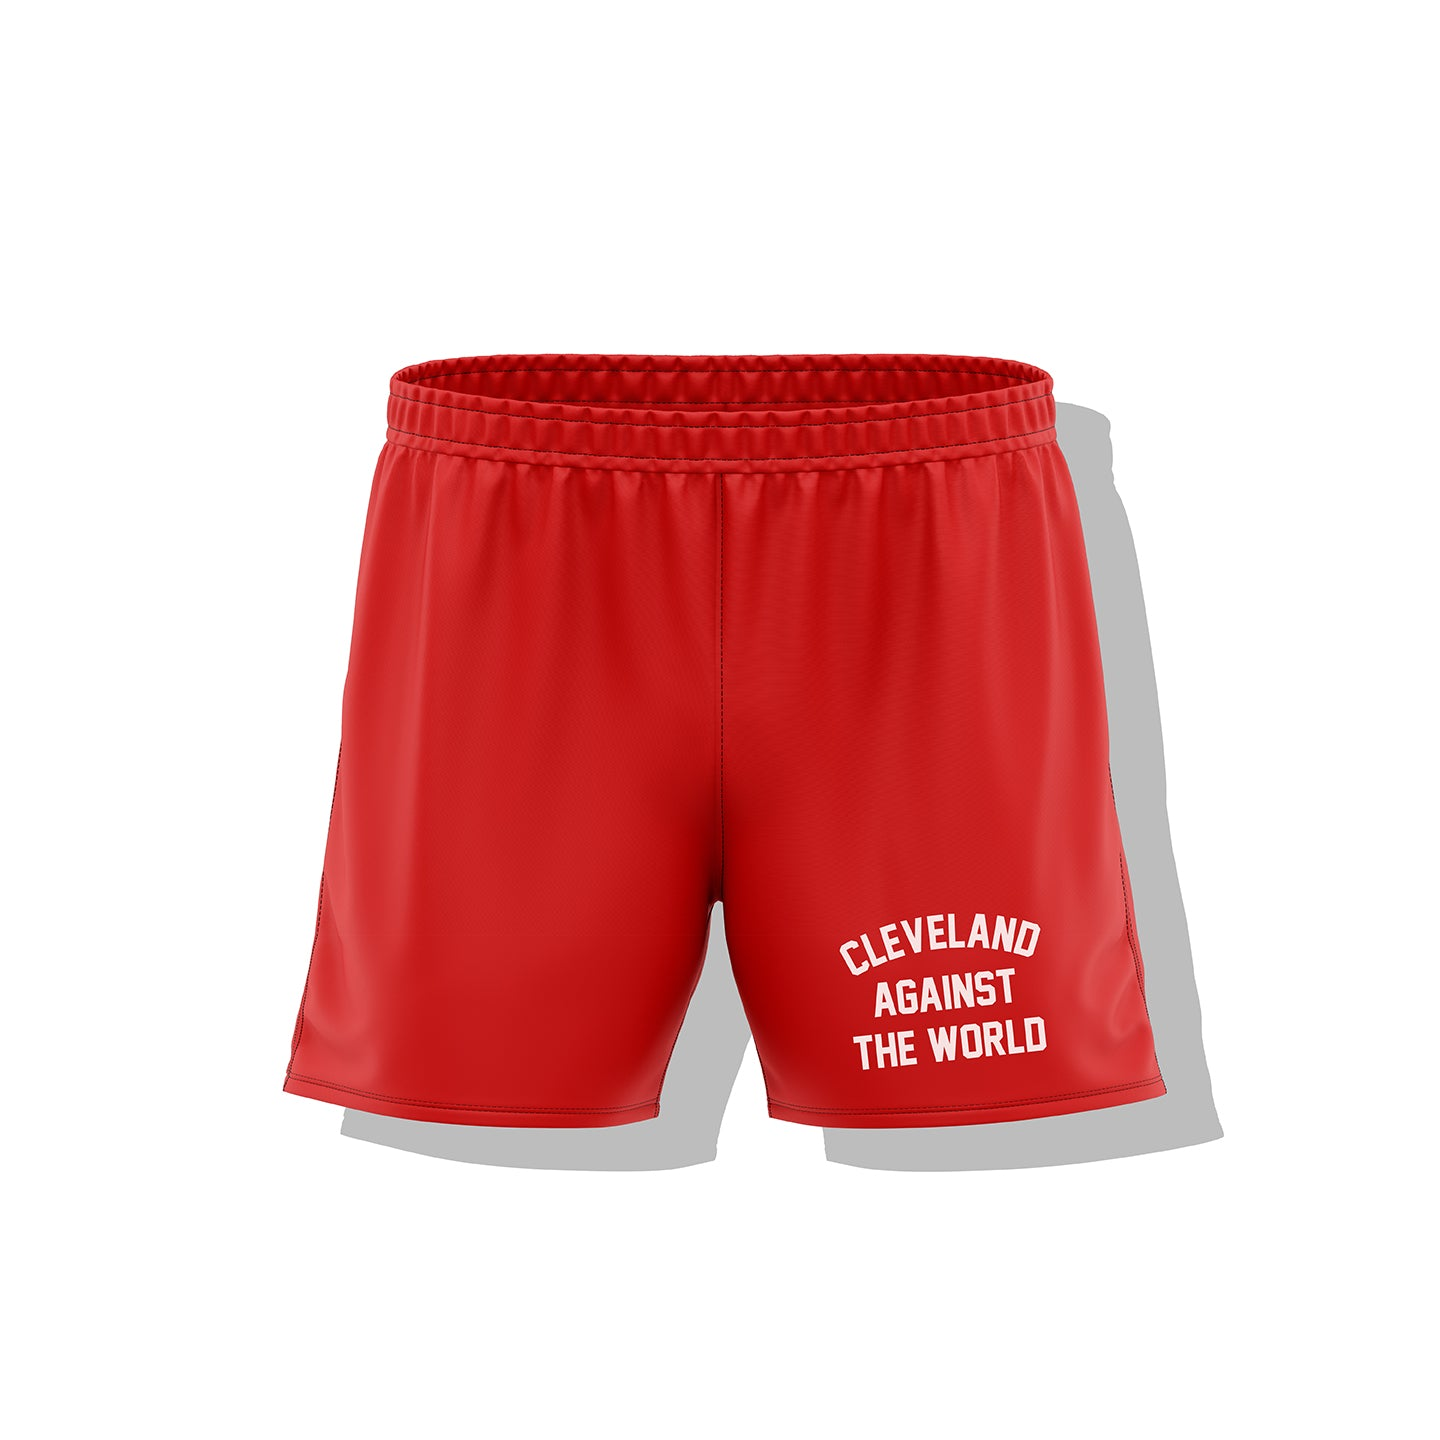 Cleveland Against The World Men's Athletic Long Shorts (RED)